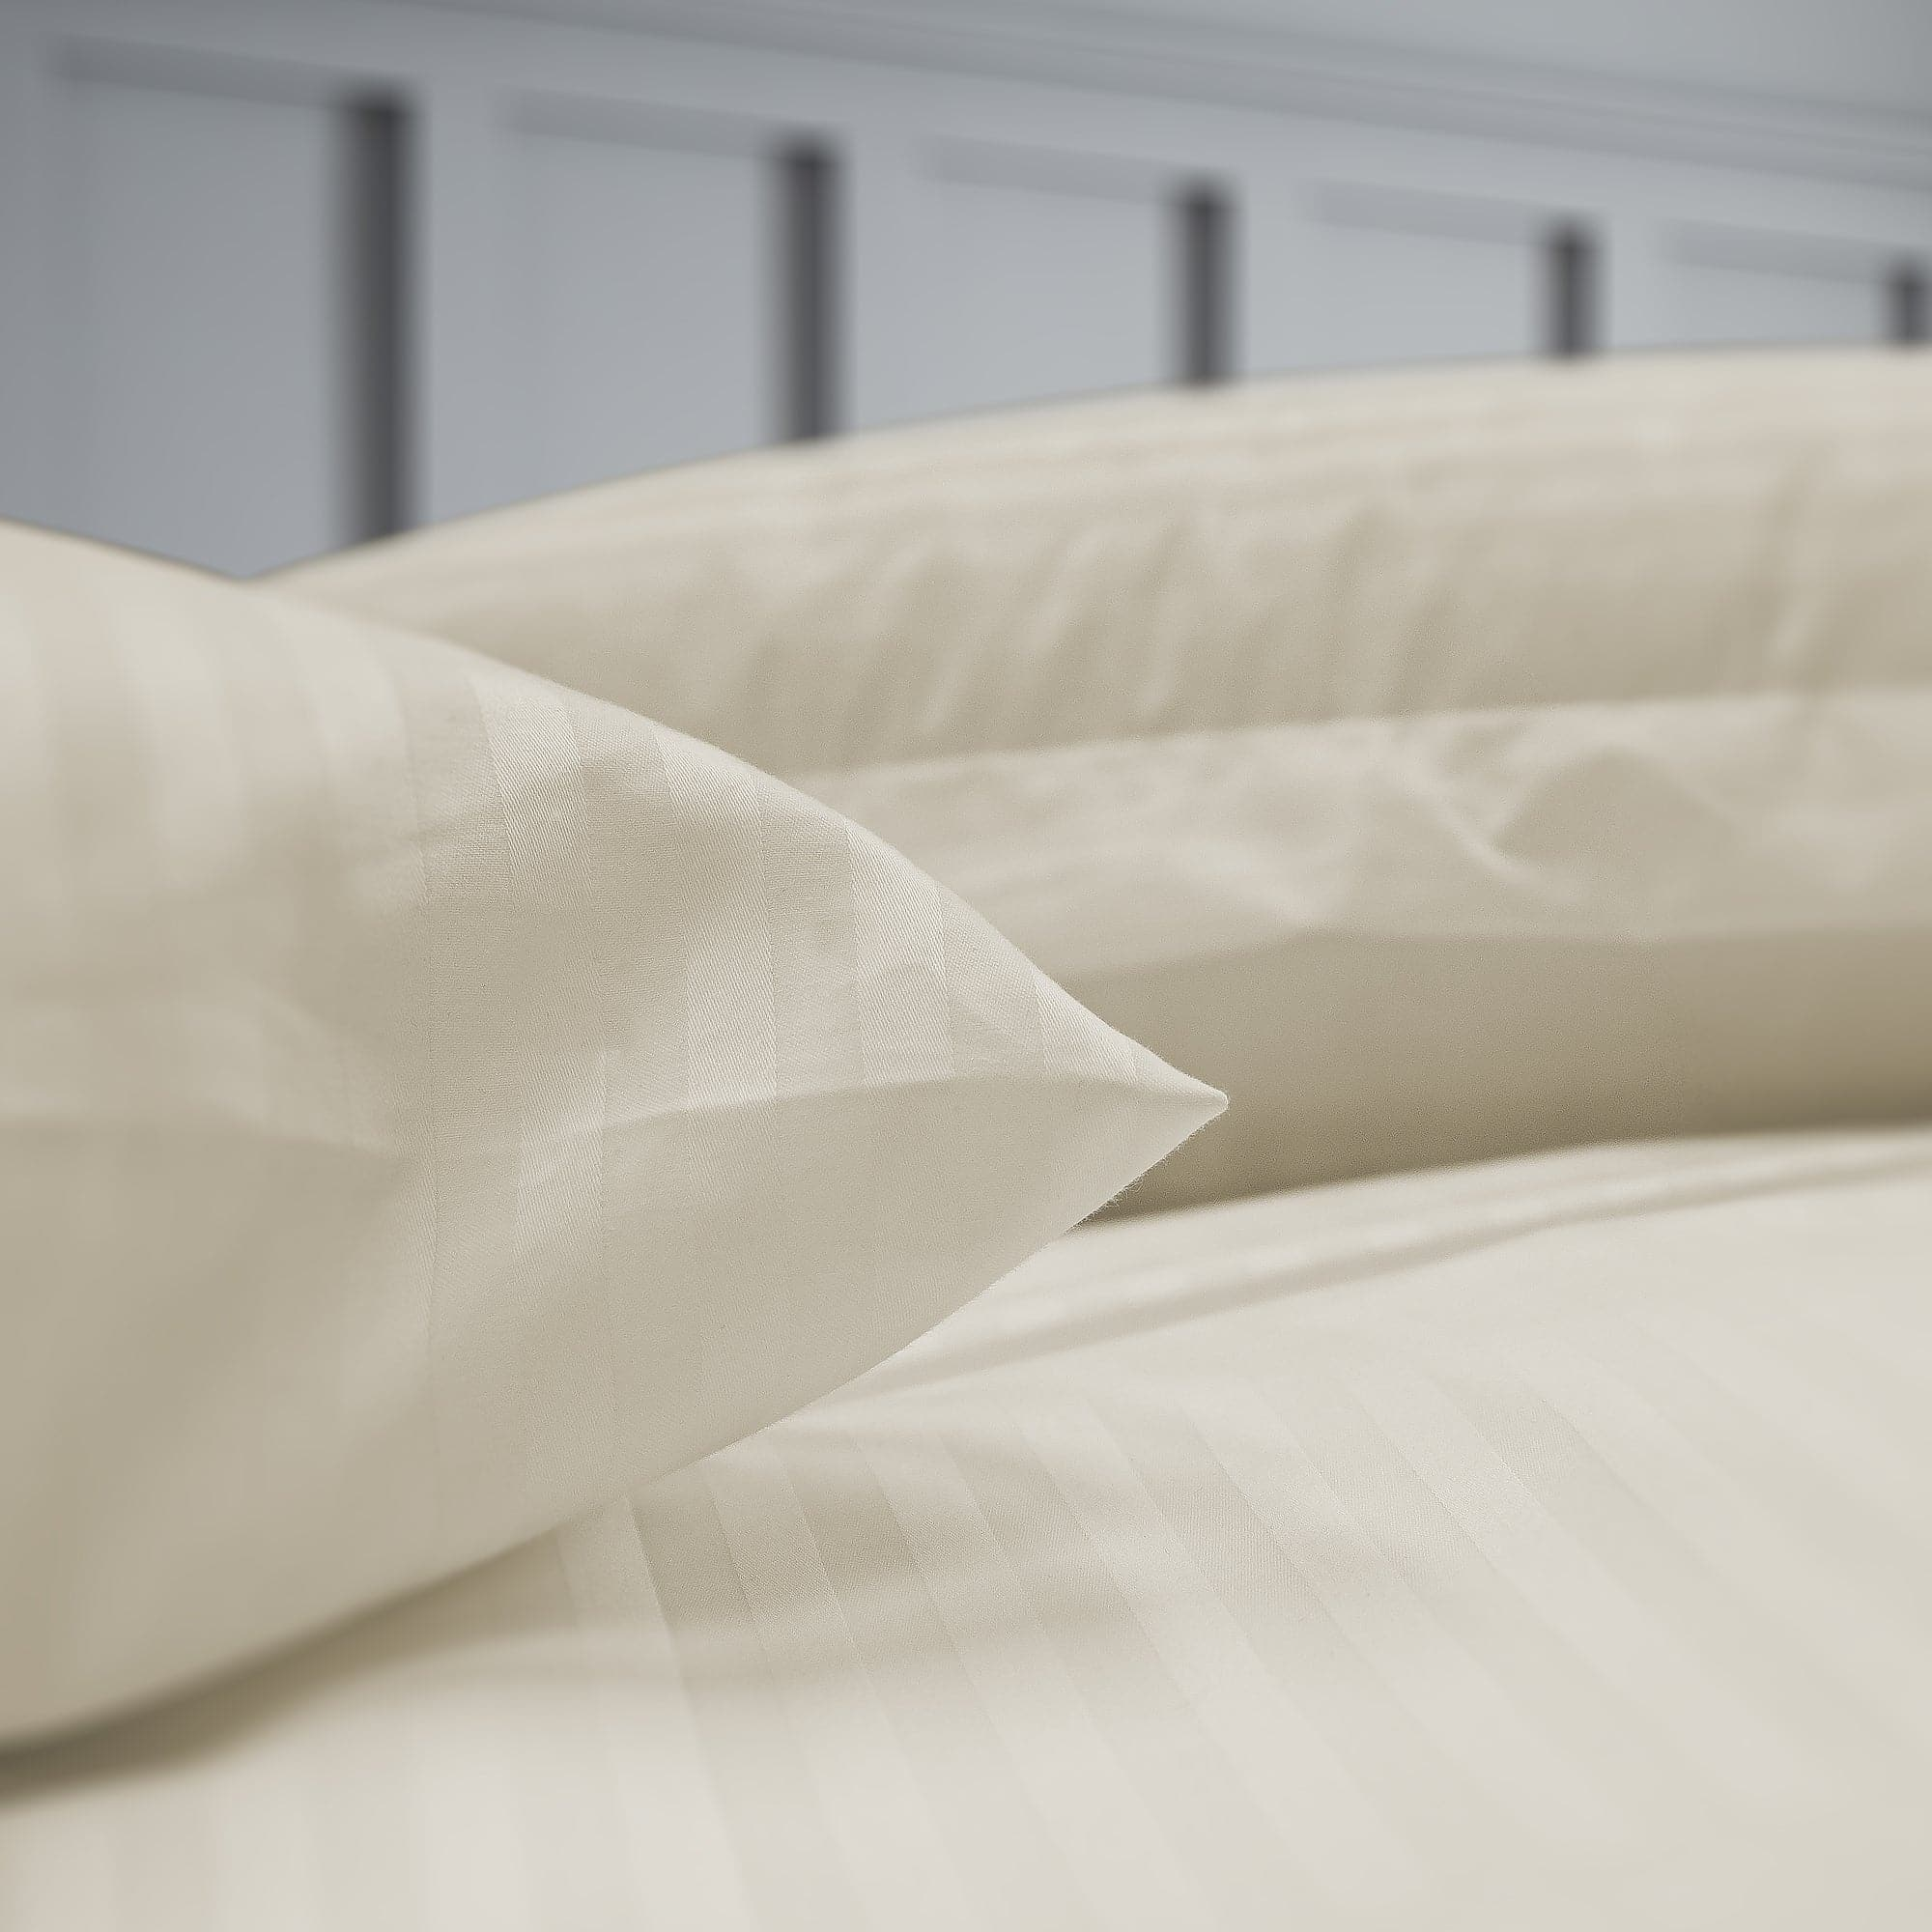 1CM Hotel Stripes 100% Cotton Sateen Fitted Sheet Set in 300 Thread Counts